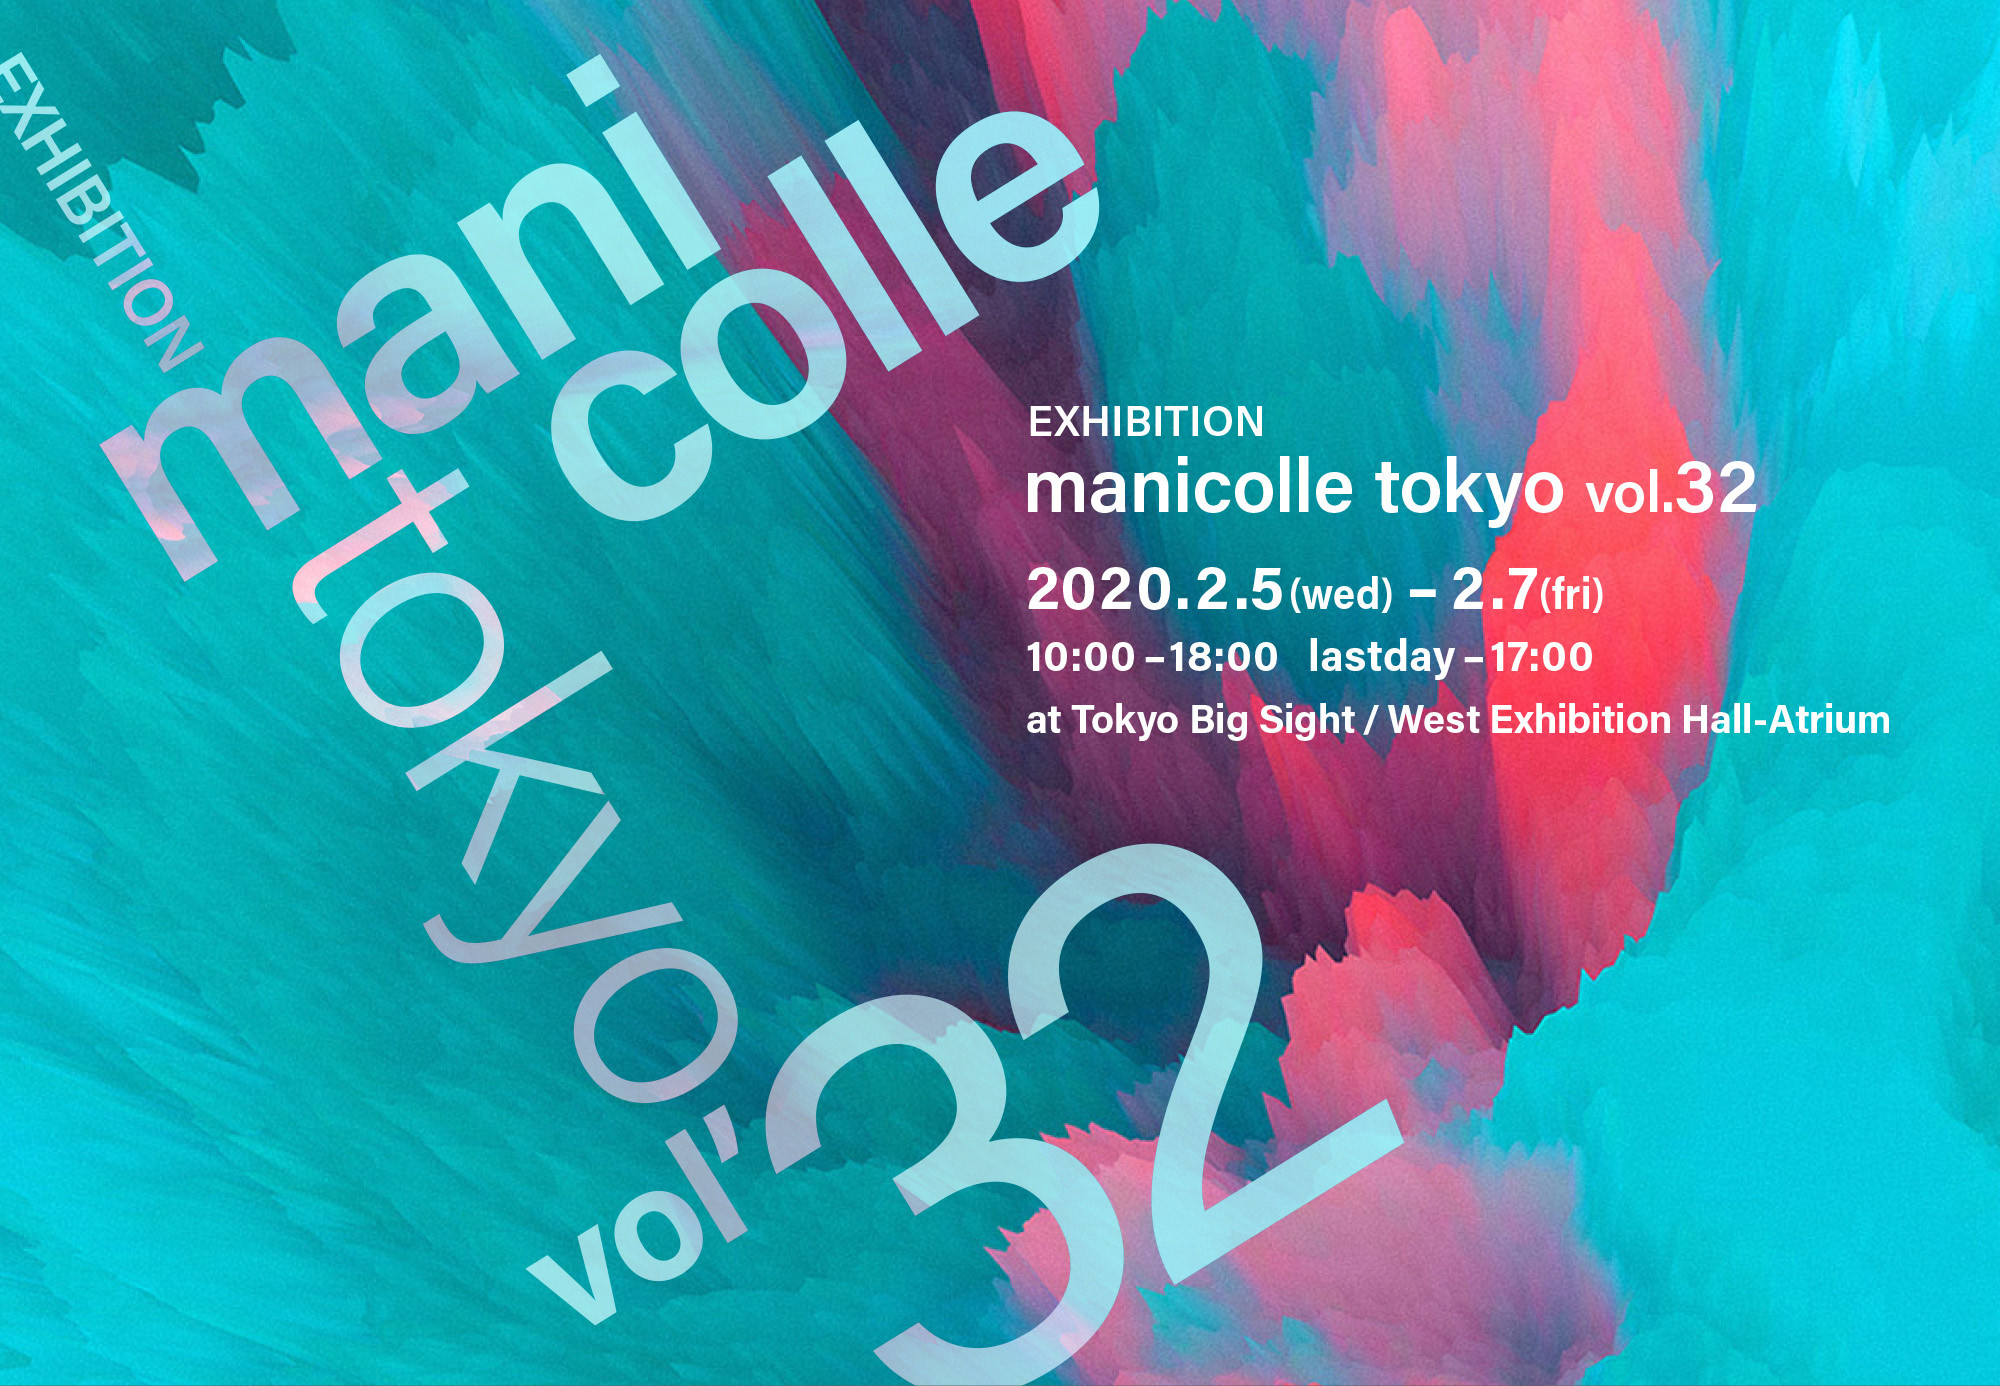 manicolle tokyo vol,32 in Gift Show